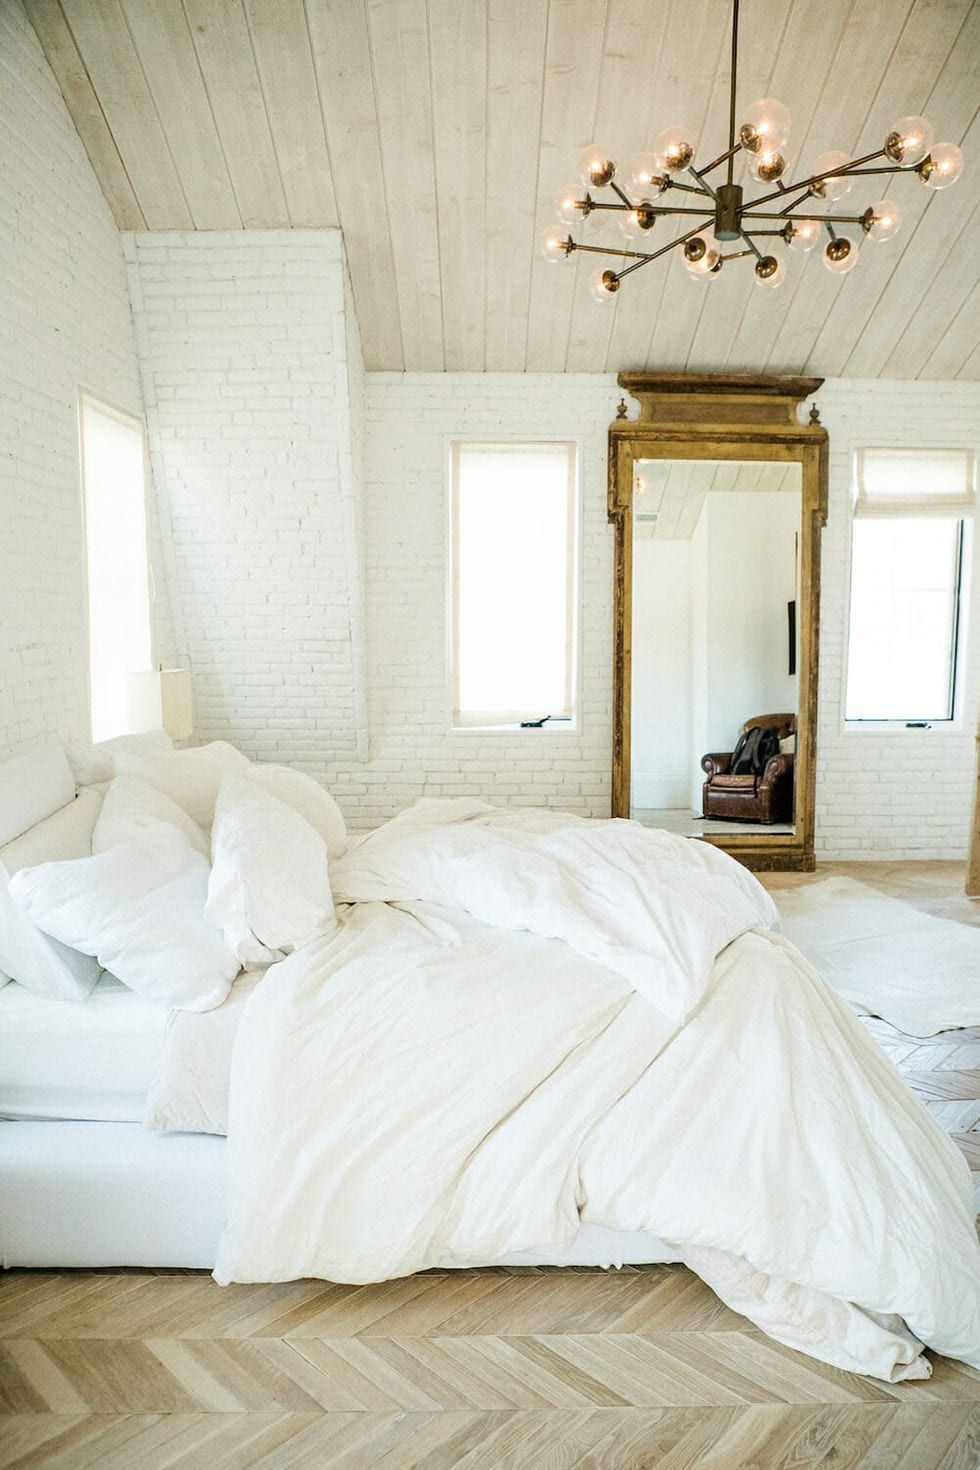 15 Cozy And Lavish Bedroom Designs For Couple in 2020